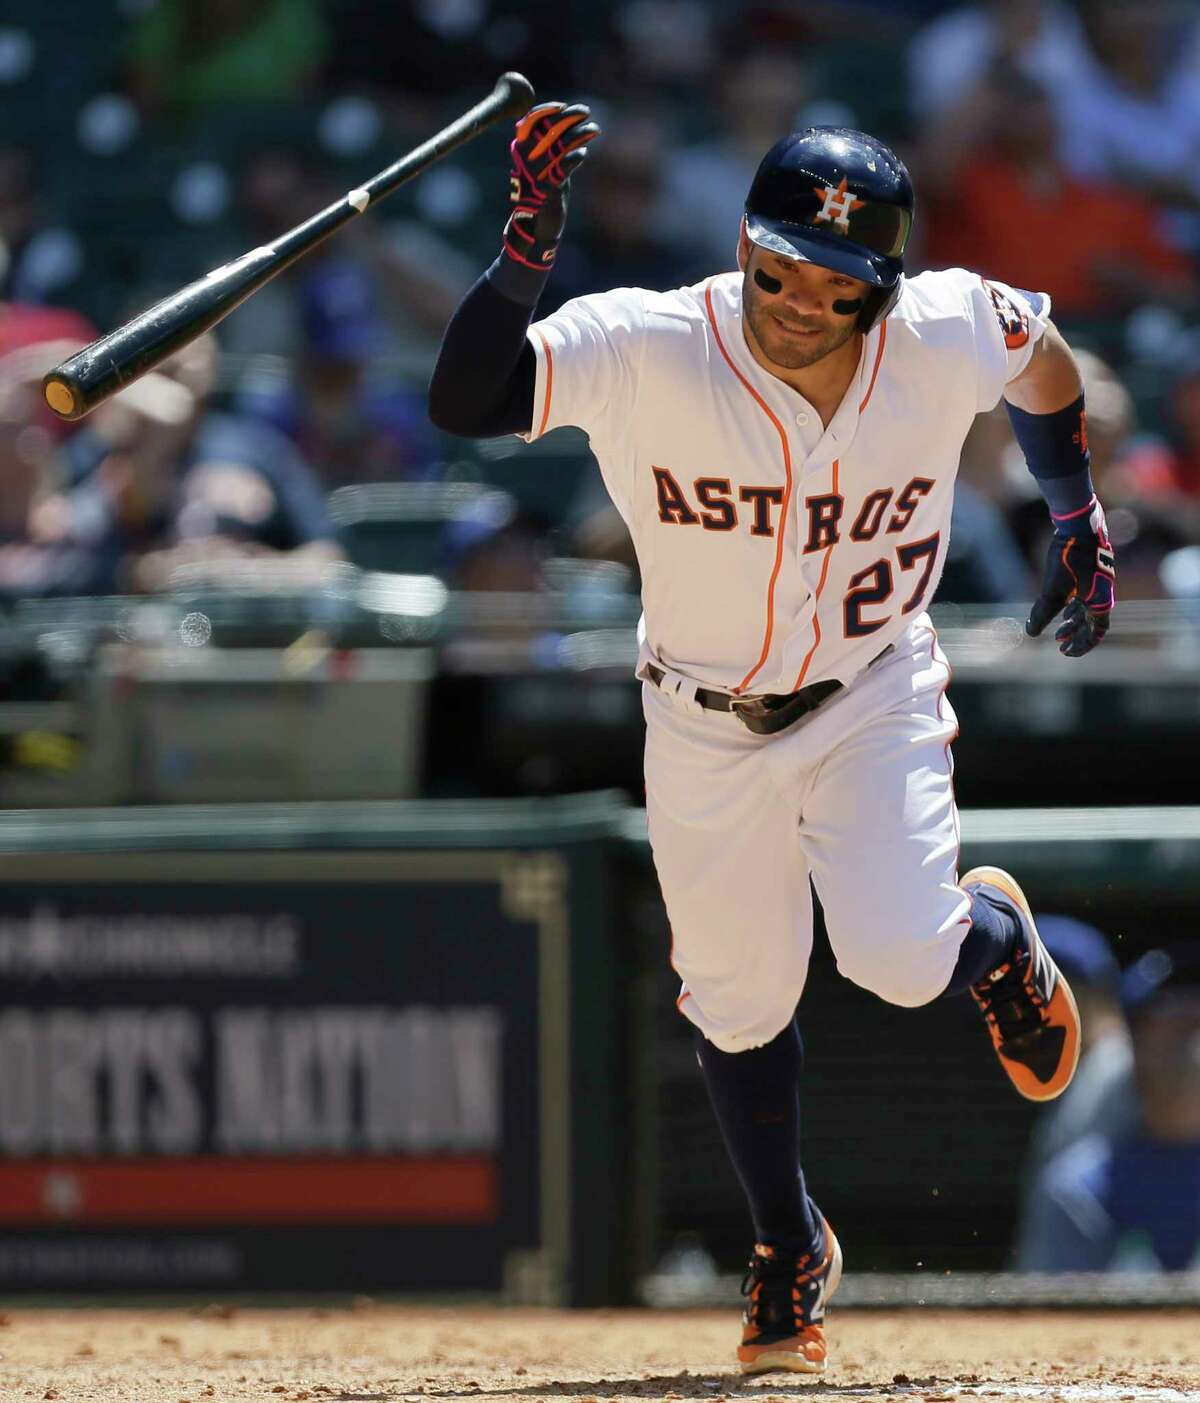 Houston Astros Jose Altuve flips his bat as he pops out against Texas Rangers during the fifth inning at Minute Maid Park Thursday, May 4, 2017, in Houston.